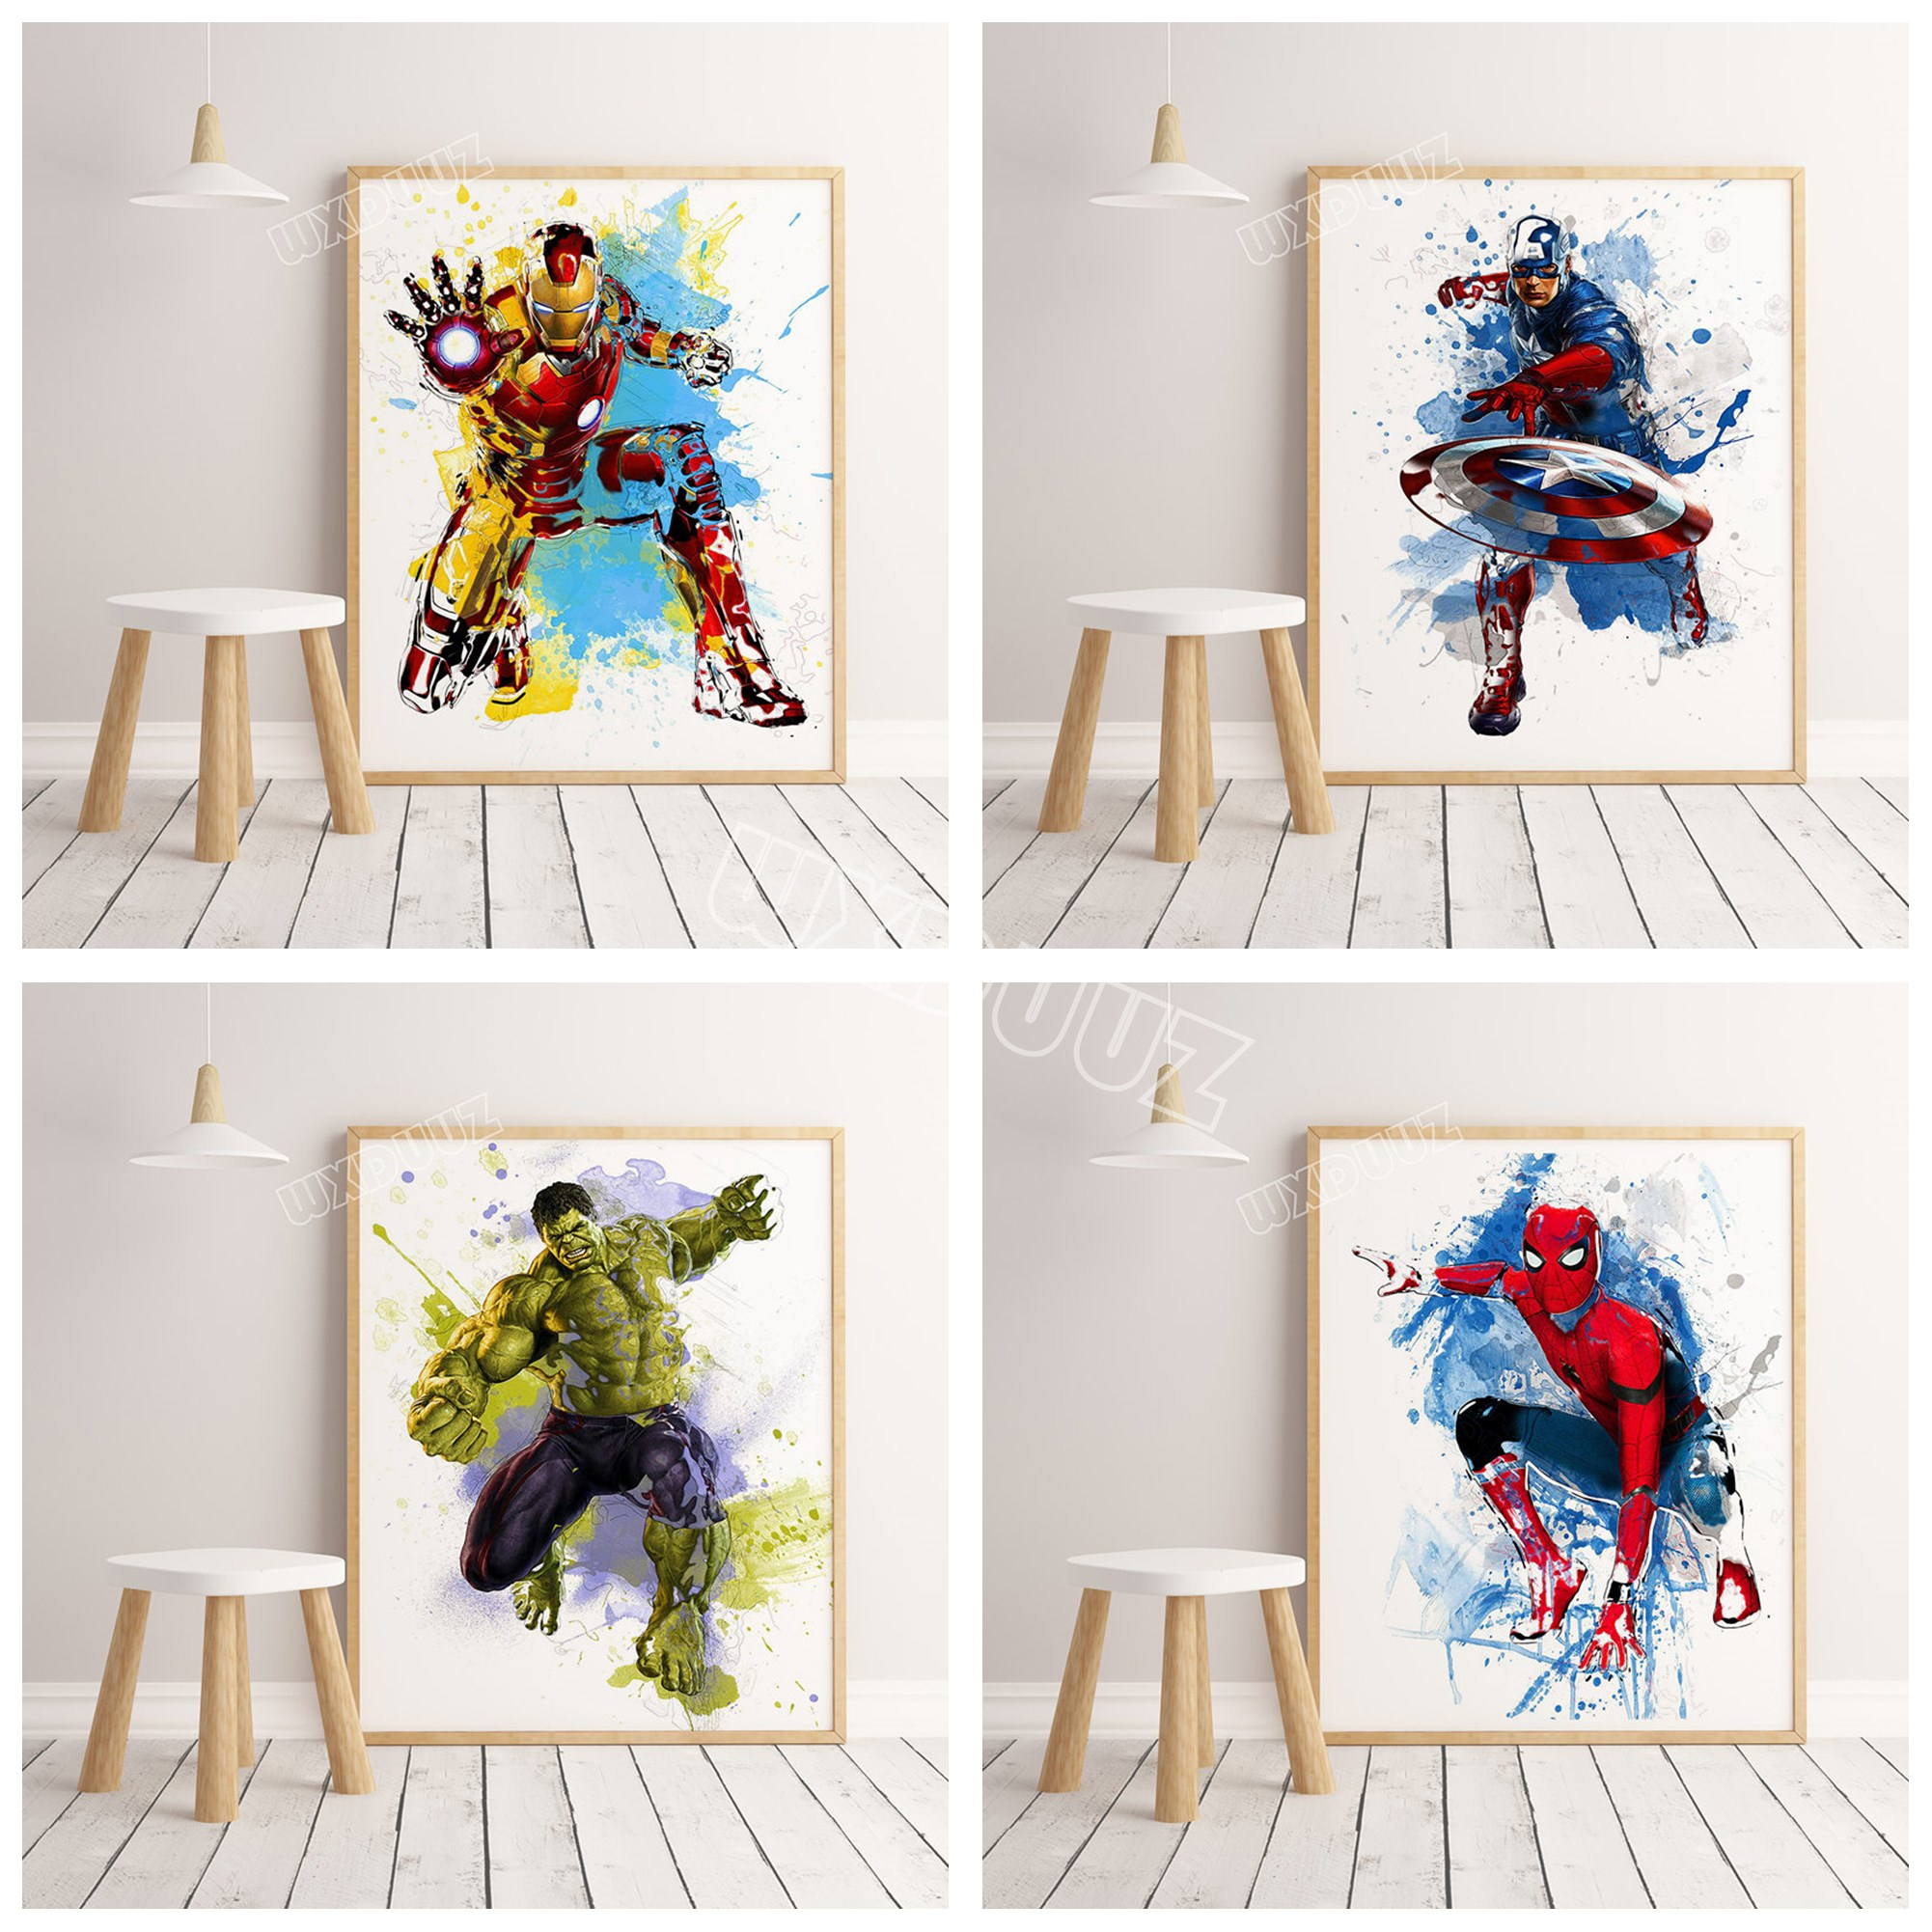 2019 watercolor marvel superhero movie Avengers: Endgame poster pictures for children's room decoration canvas painting K295